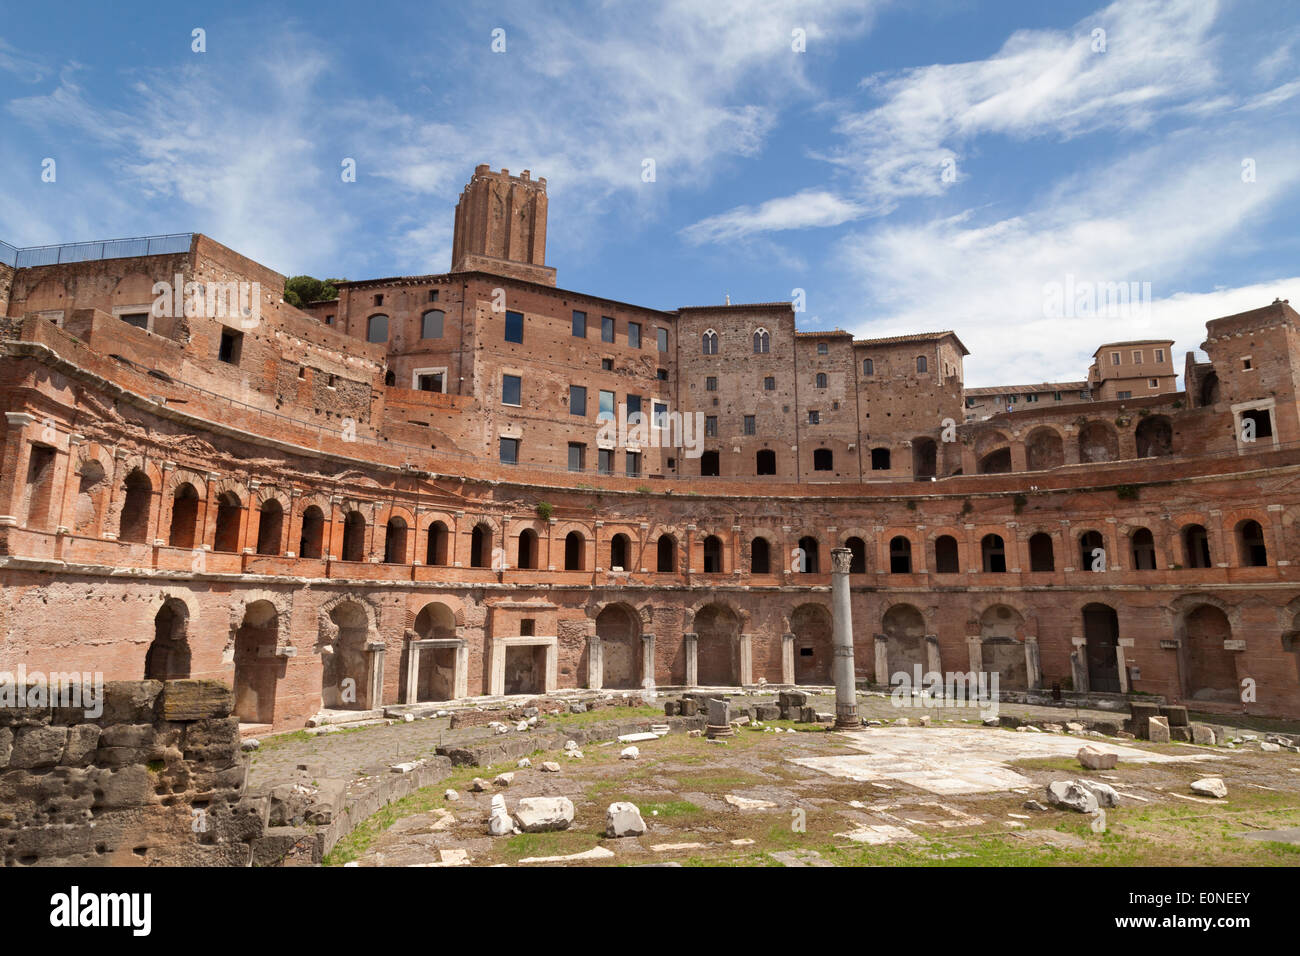 Emperor  Trajans Markets, part of the Roman Forum, ancient Rome Italy Europe - Stock Image